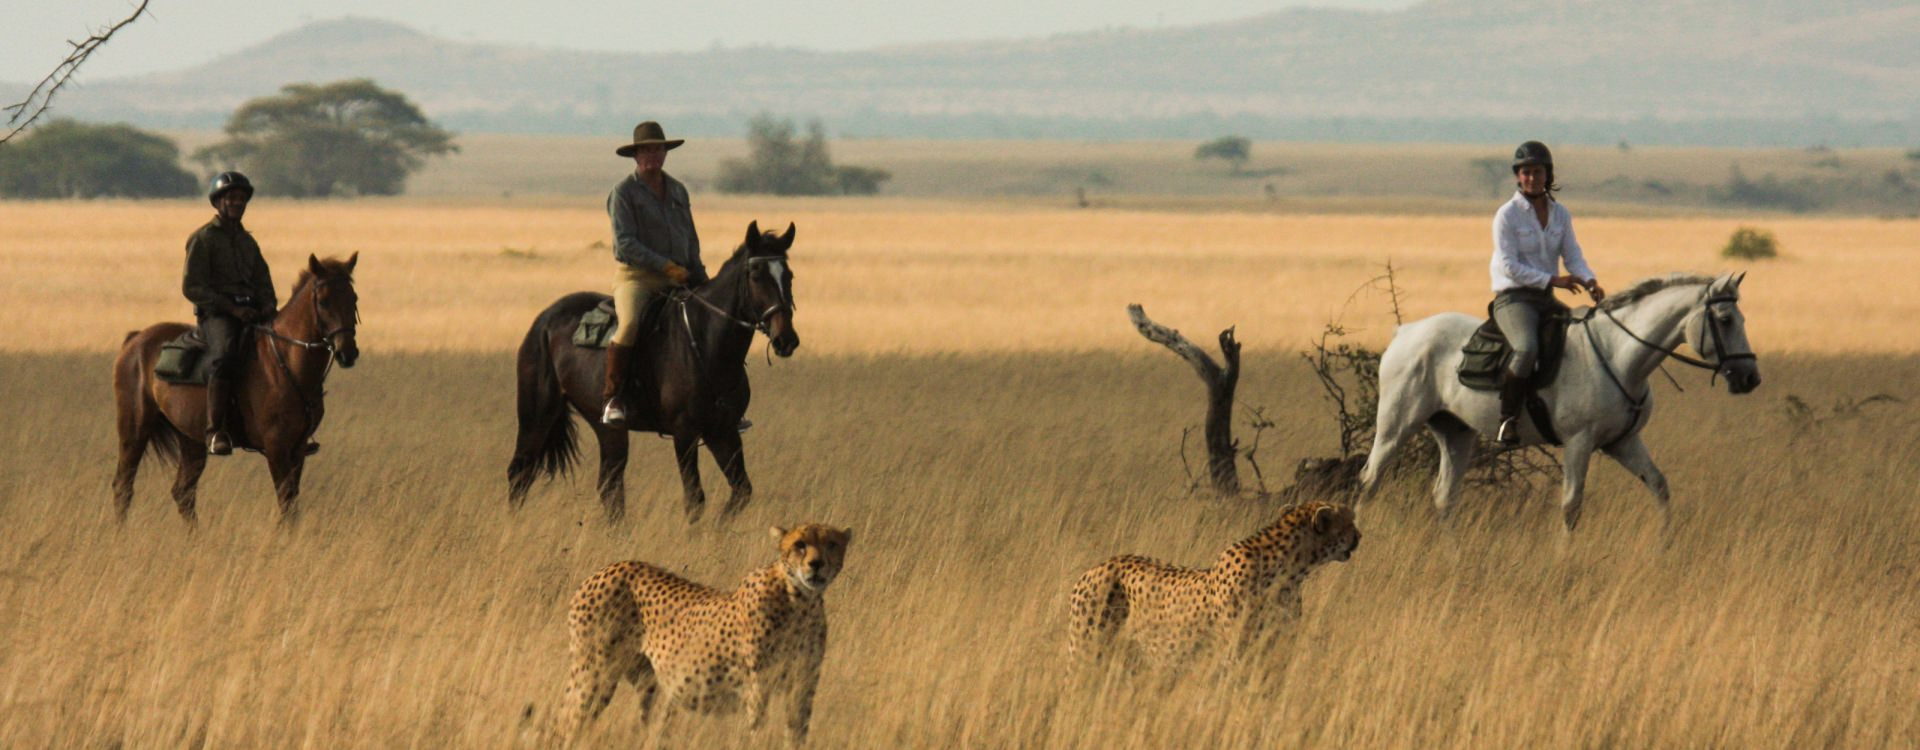 Safari in Africa